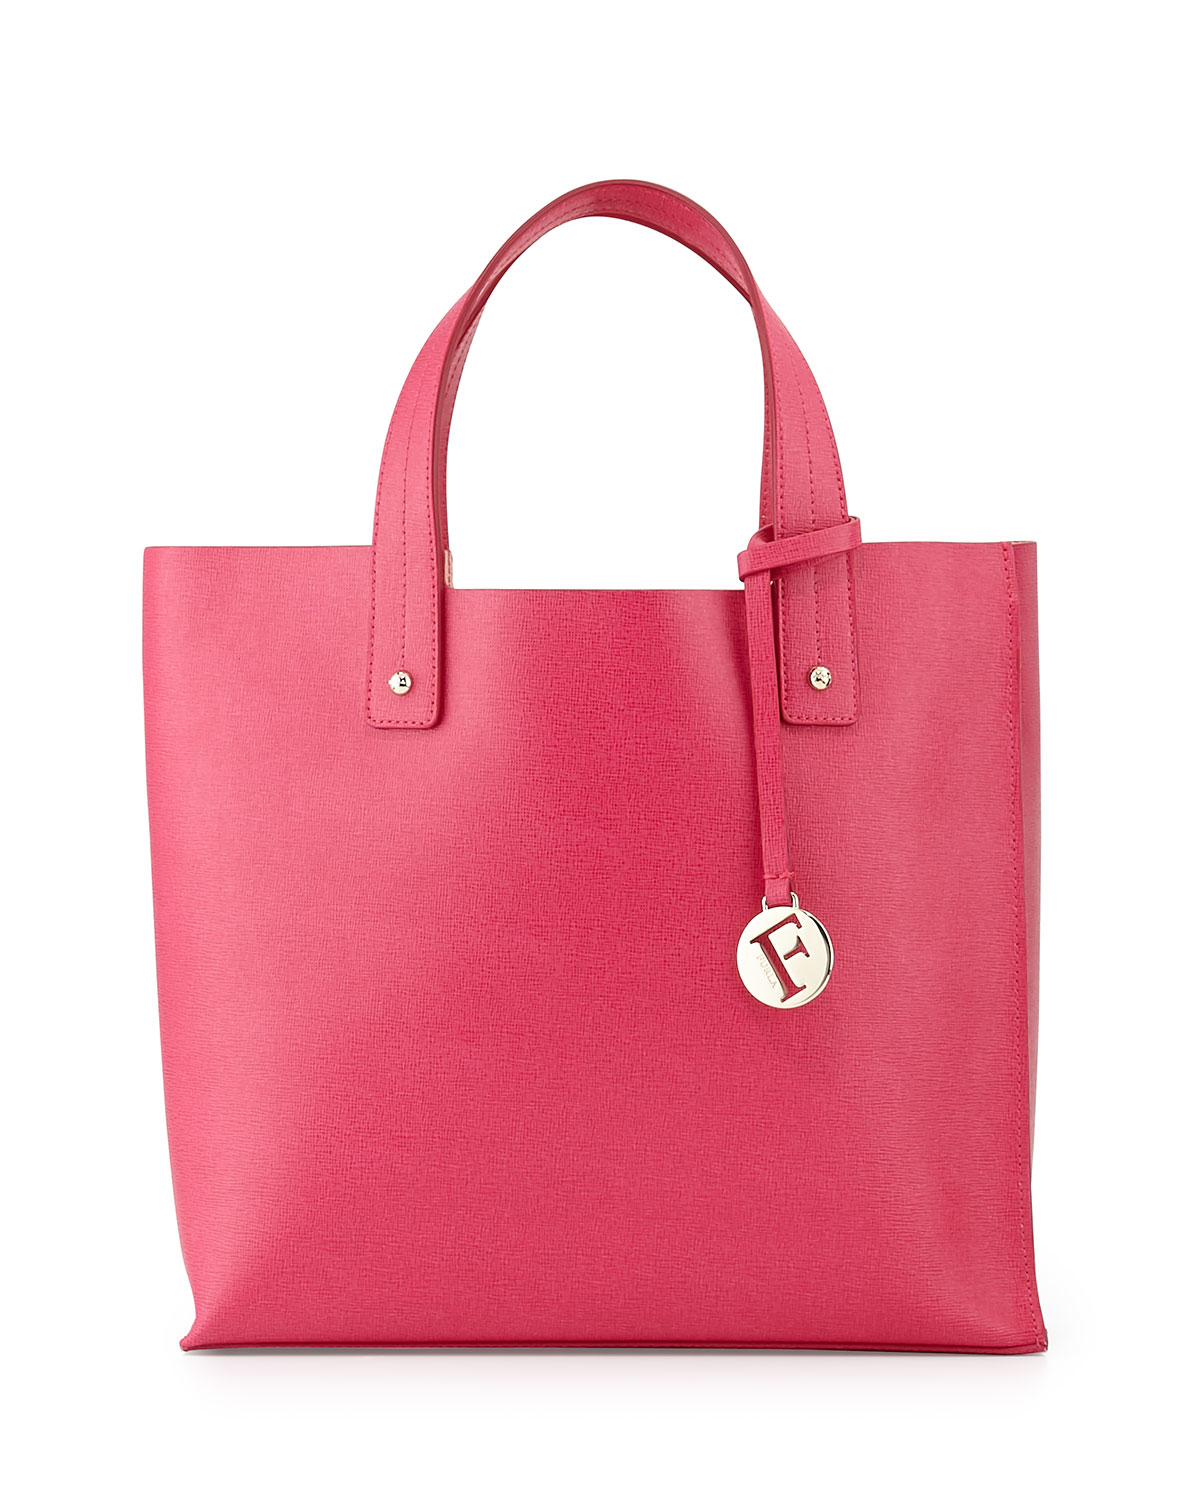 730c886362fd55 Furla Leather Tote Bag | Stanford Center for Opportunity Policy in ...